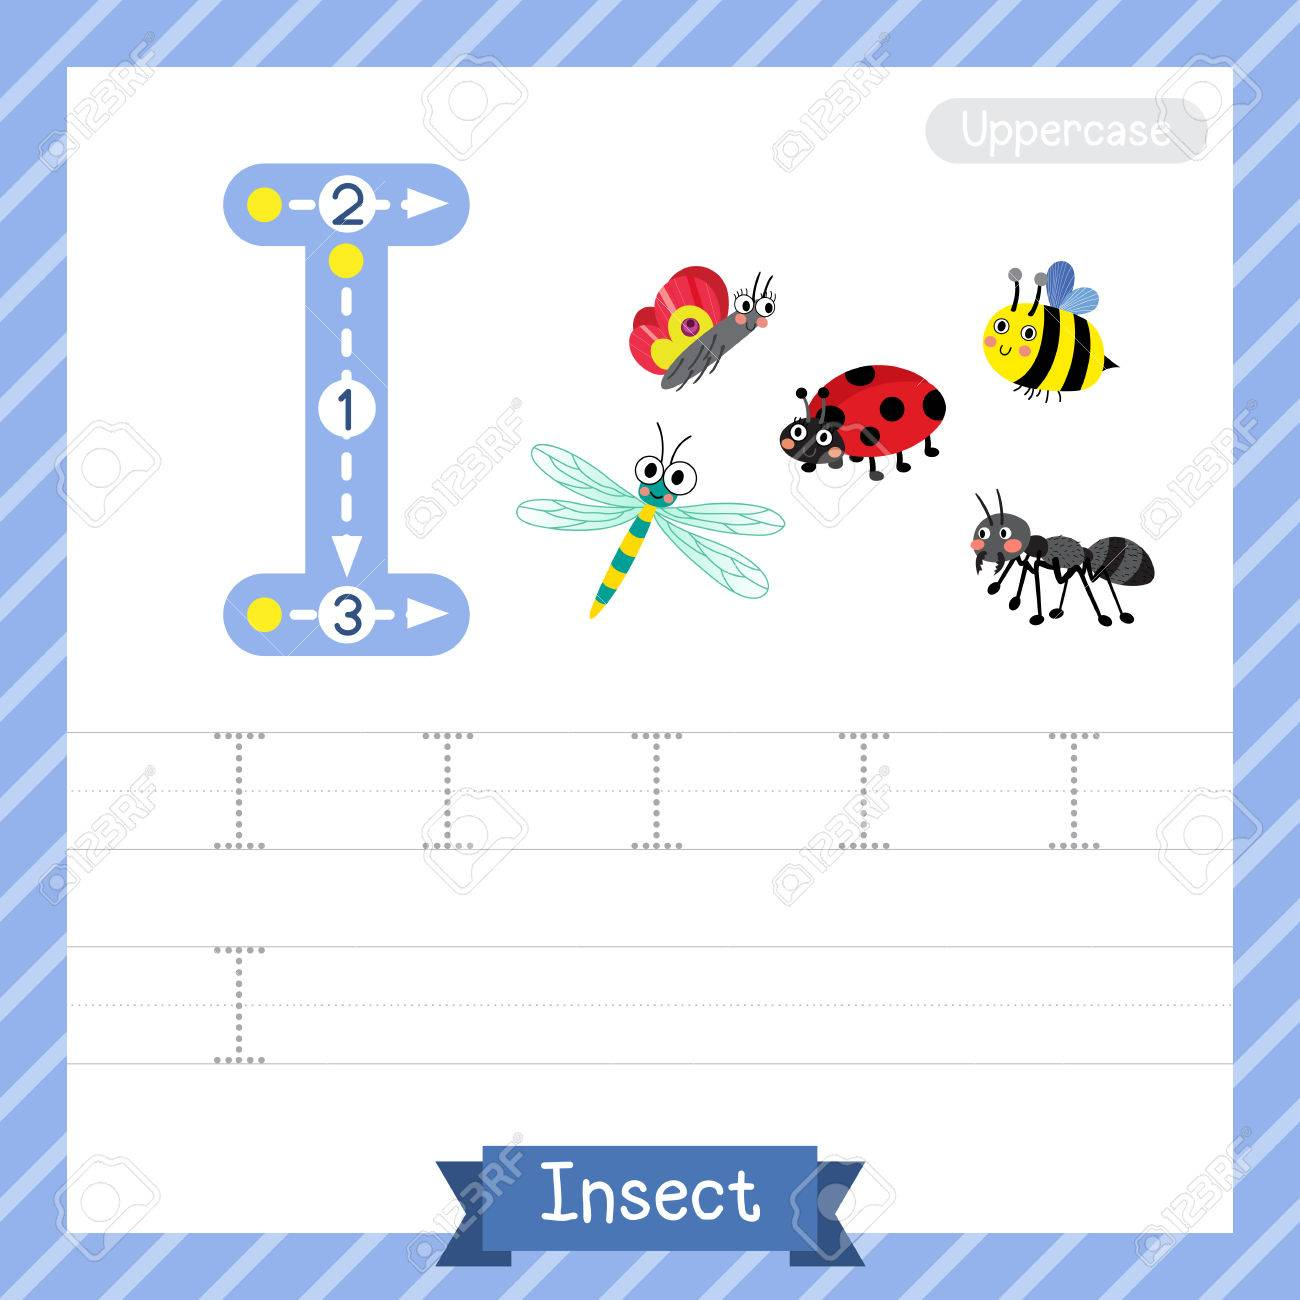 letter i uppercase tracing practice worksheet with insect for kids learning to write illustration